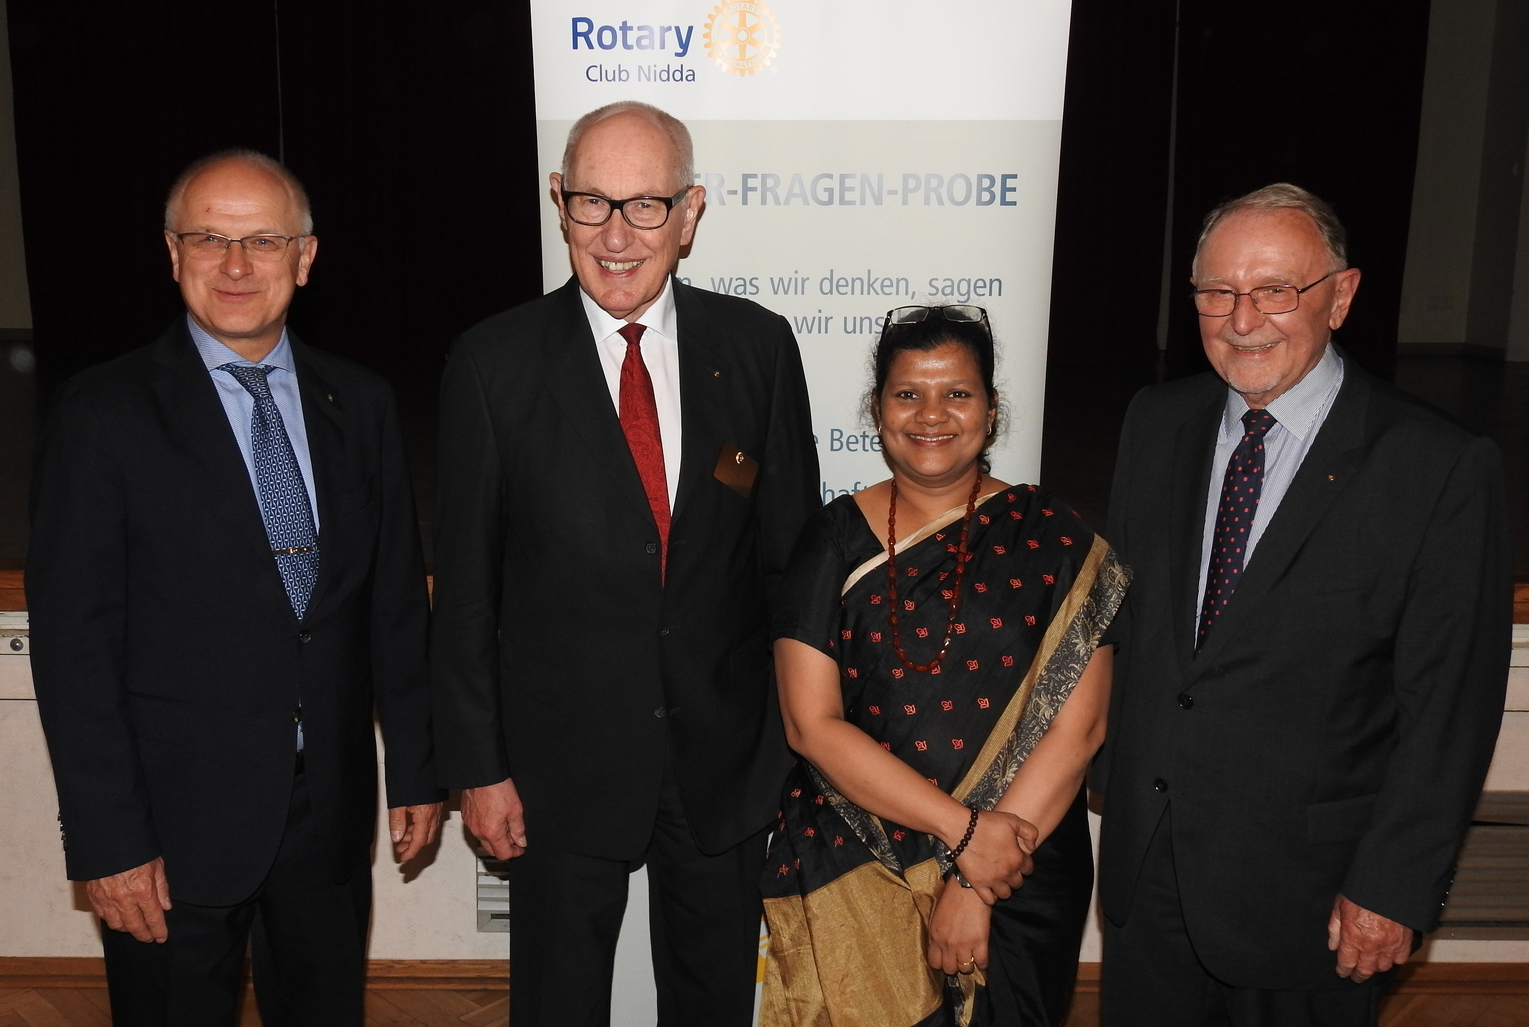 Bollywood in Nidda, Dirk Freytag, Governor